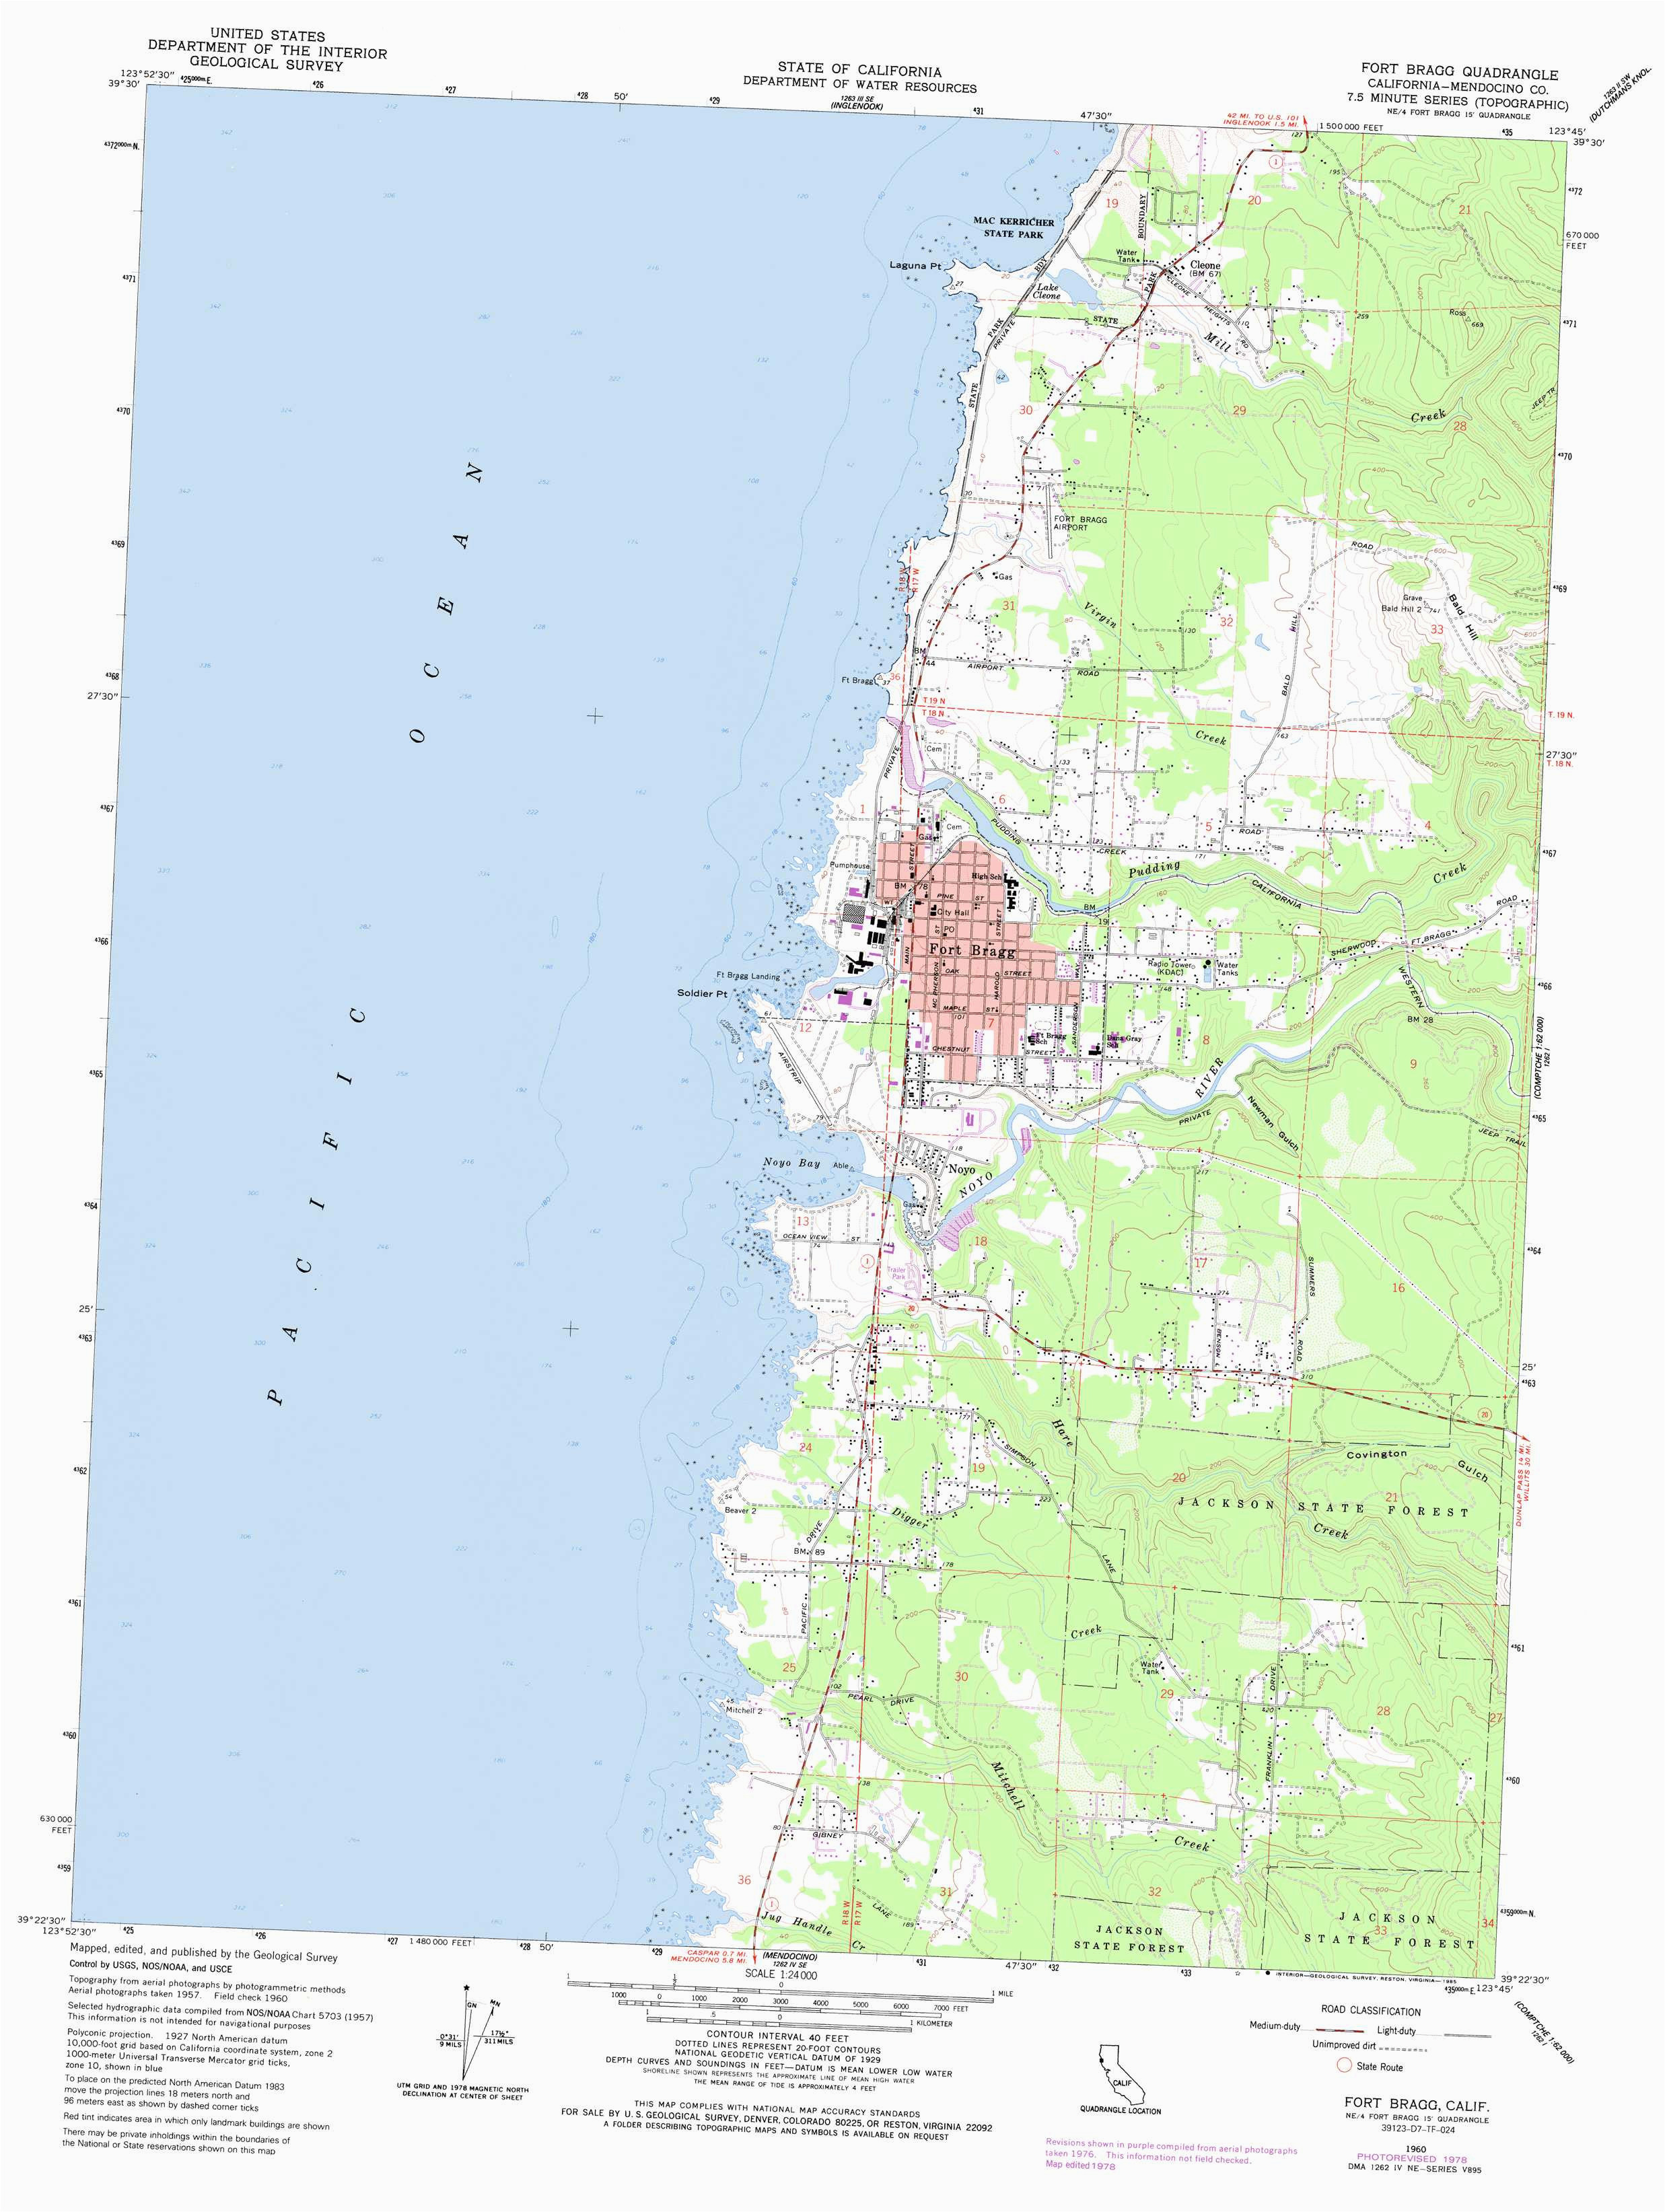 Recent Earthquake Map California Od Picture Collection Website fort Bragg California Map Reference Hd